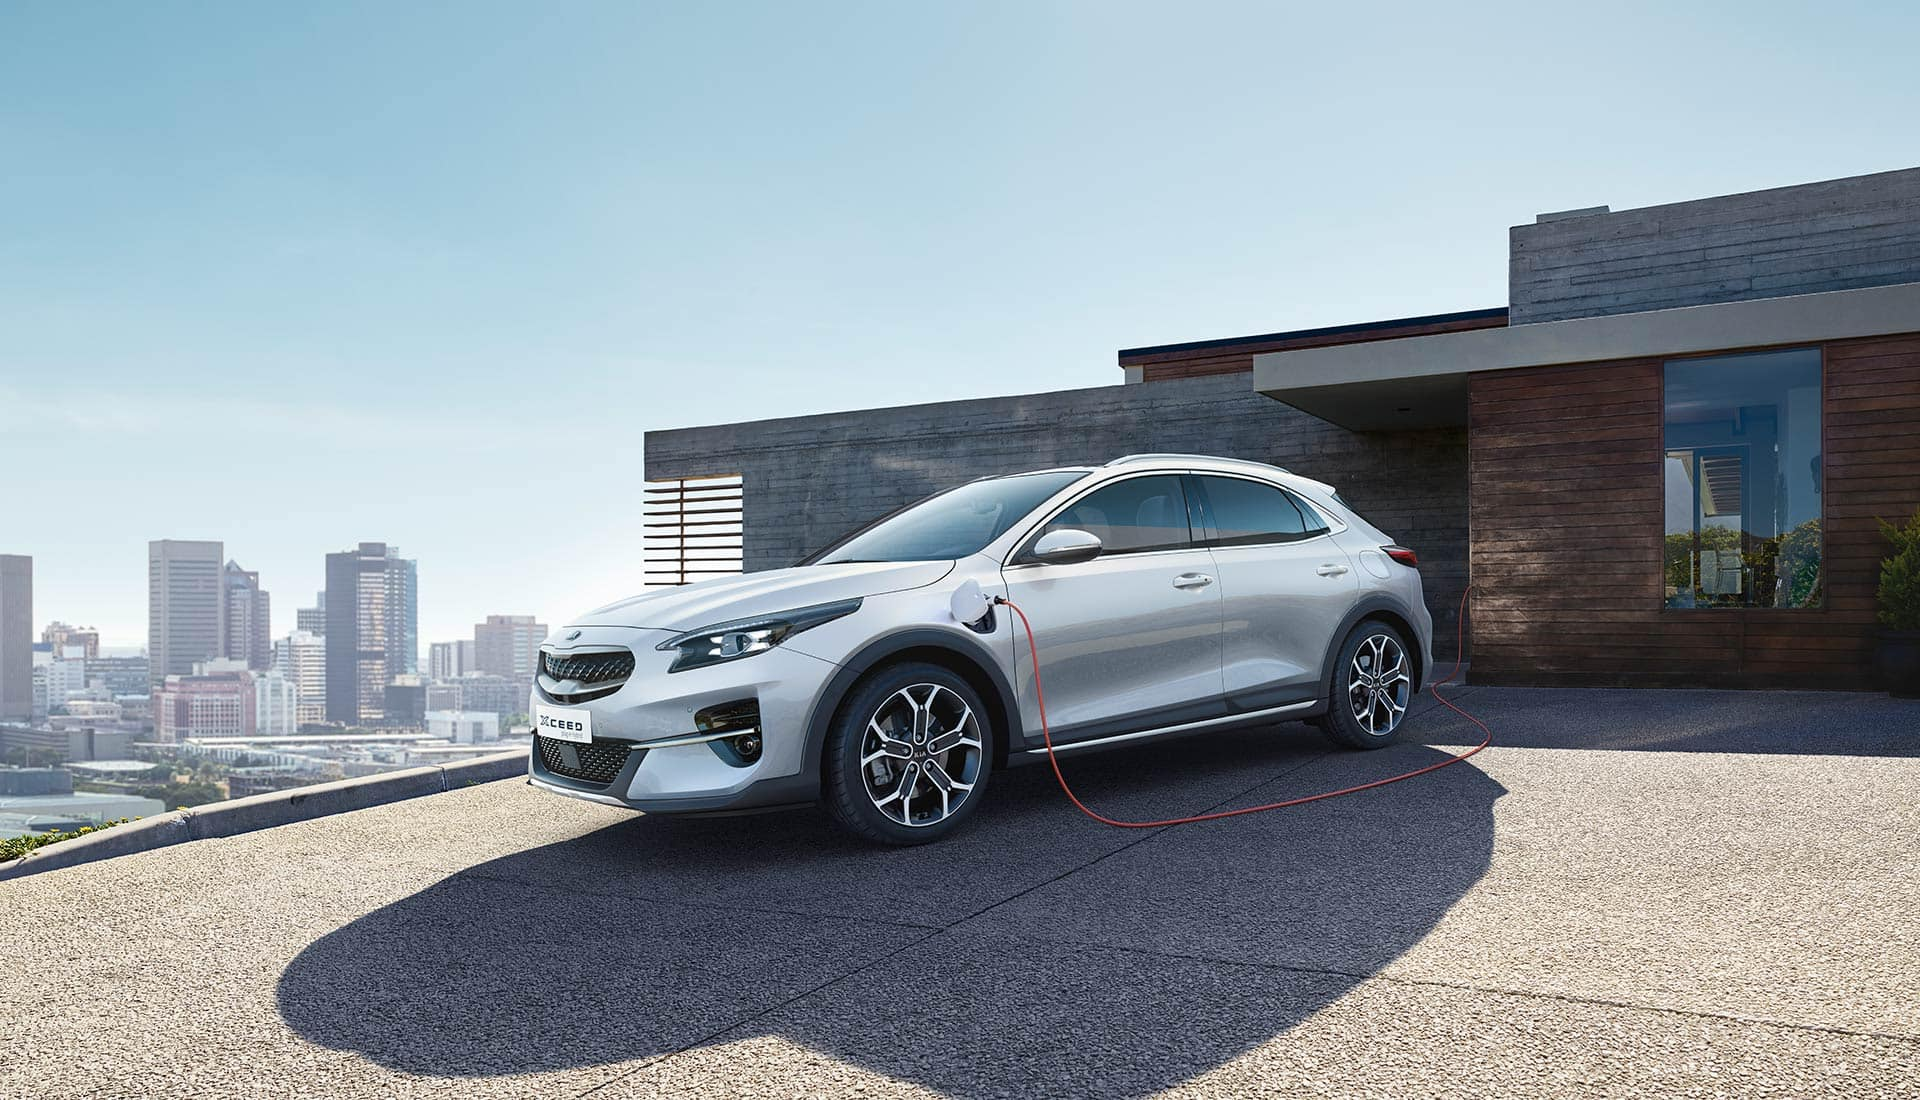 kia xceed plug-in hybrid charging